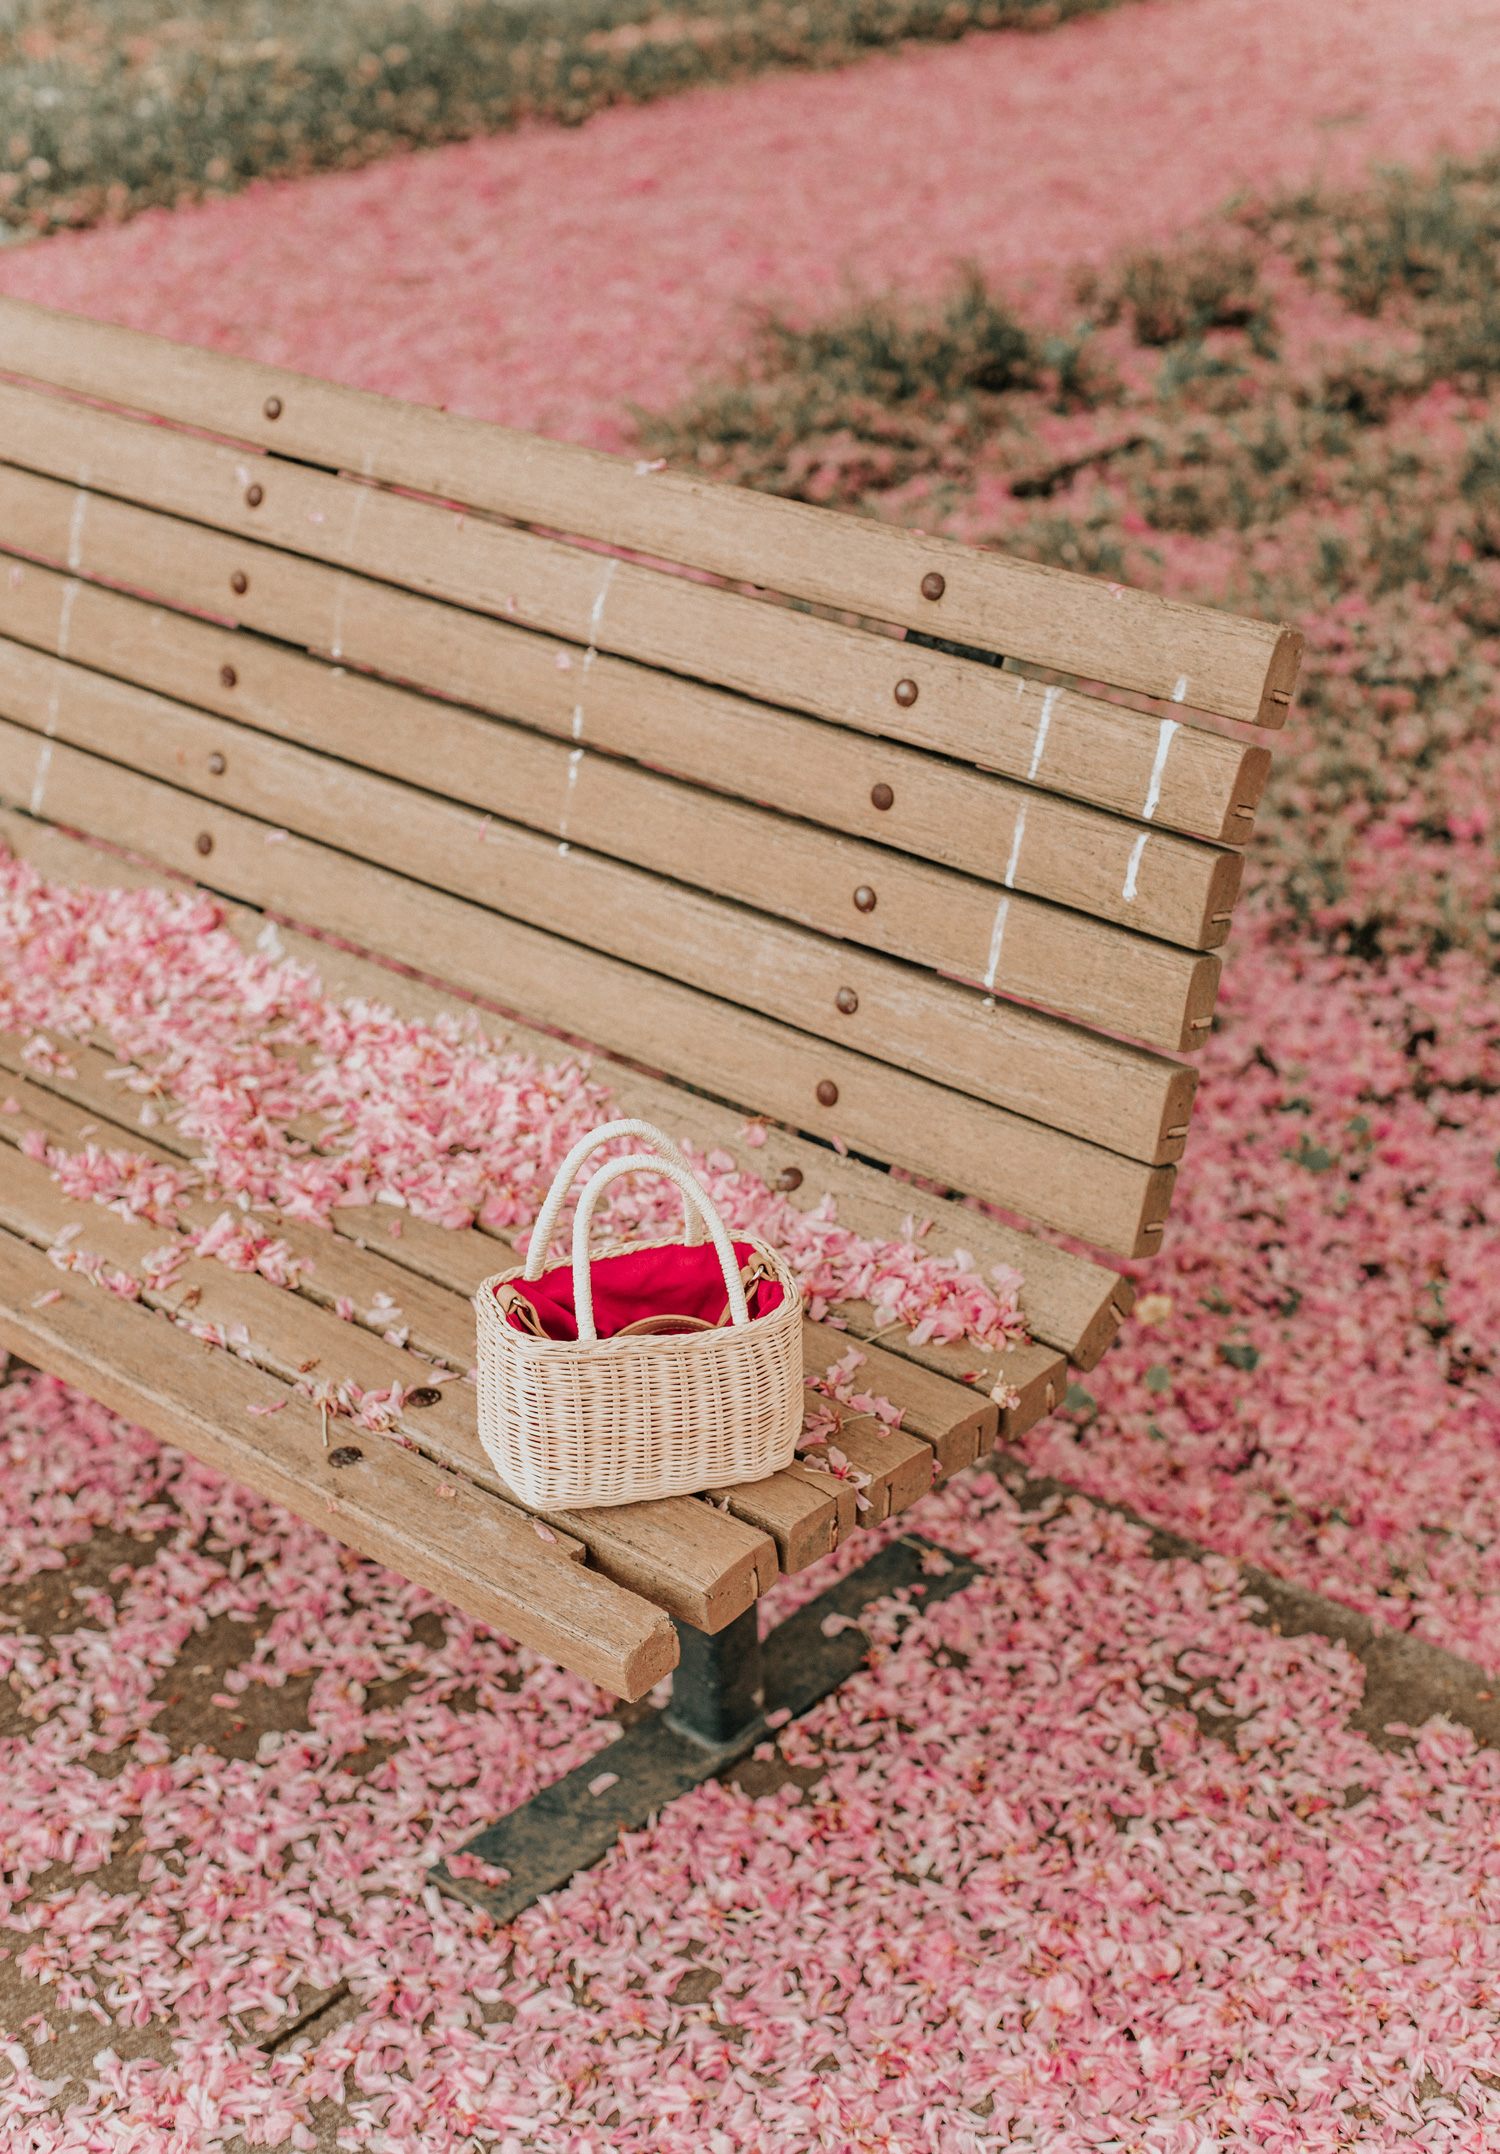 Straw basket bag cherry blossom petals pink